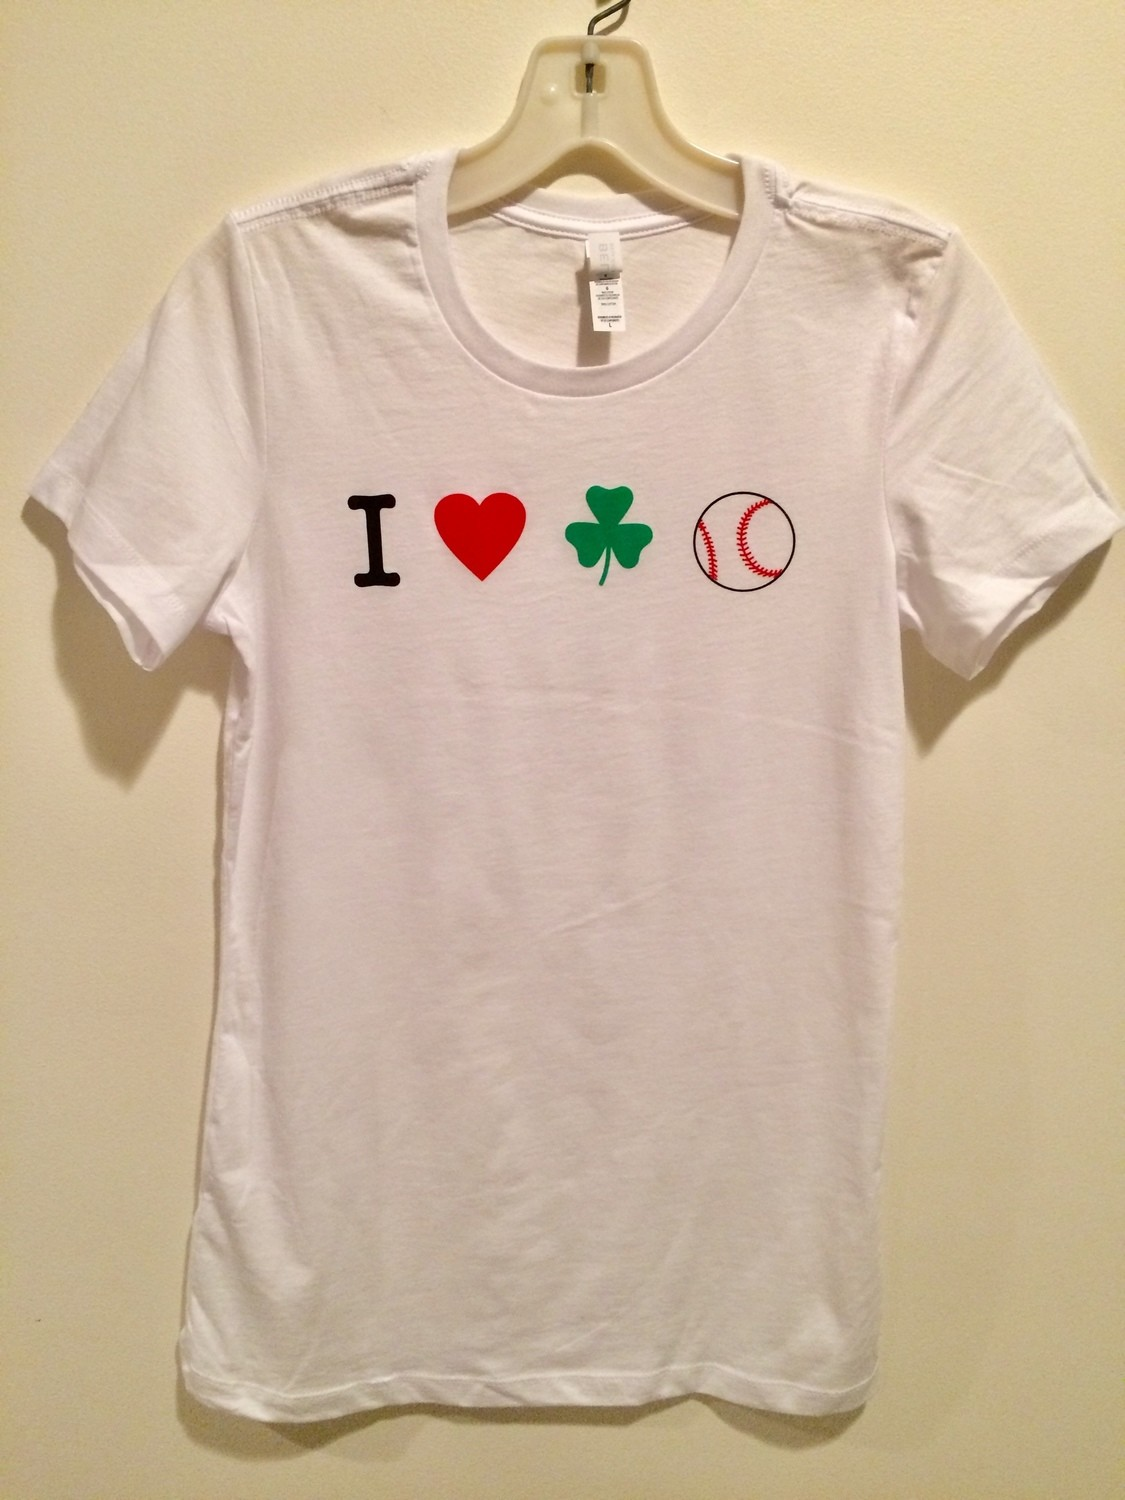 I LOVE IRISH BASEBALL Women's Icon T-shirt